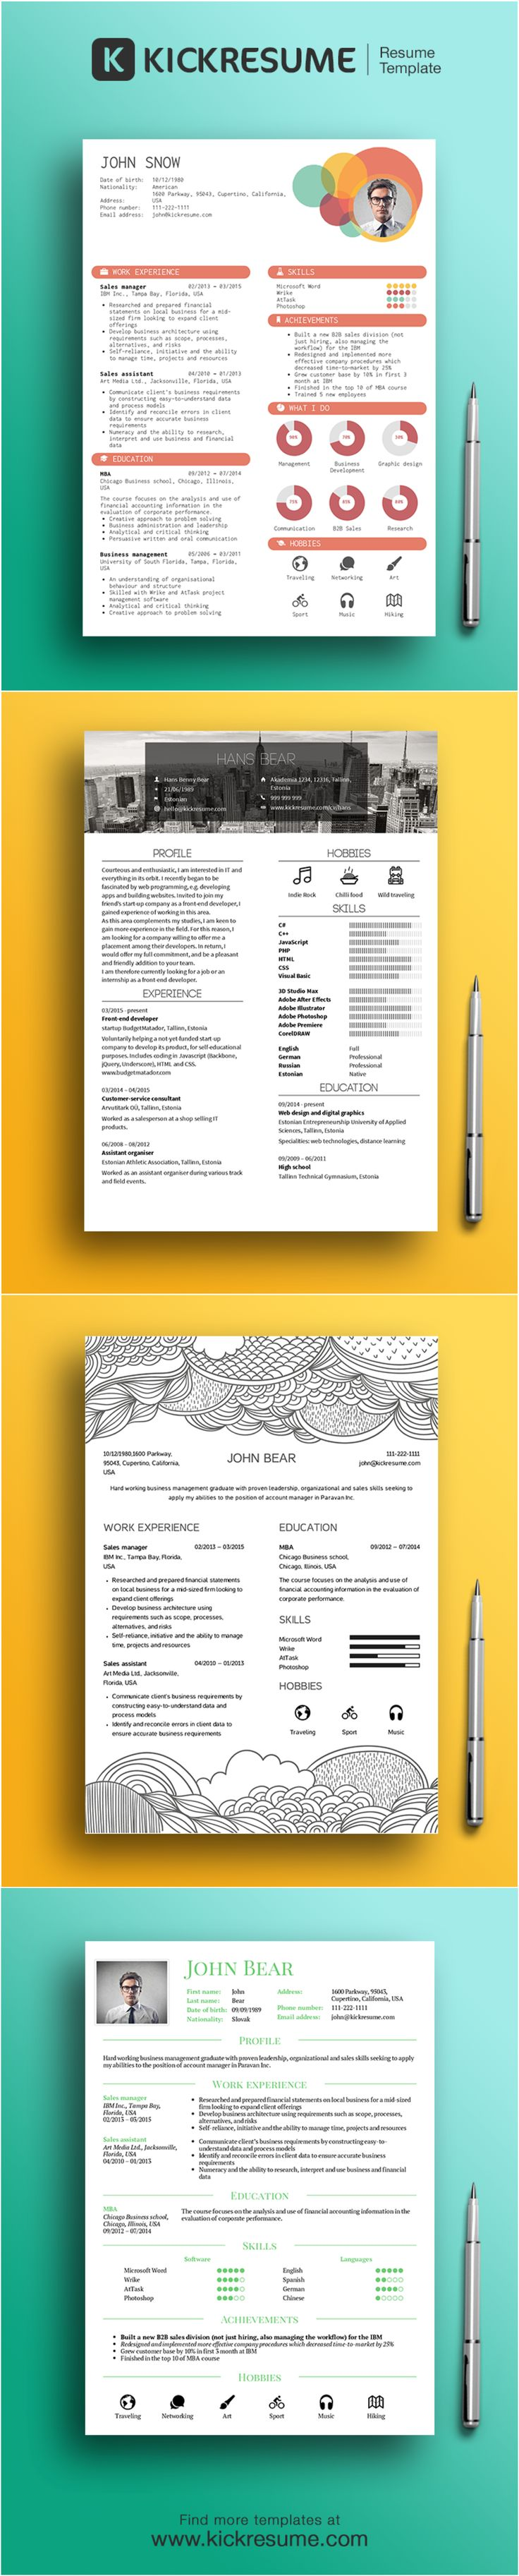 Beautiful infographic resume templates by www.kickresume.com